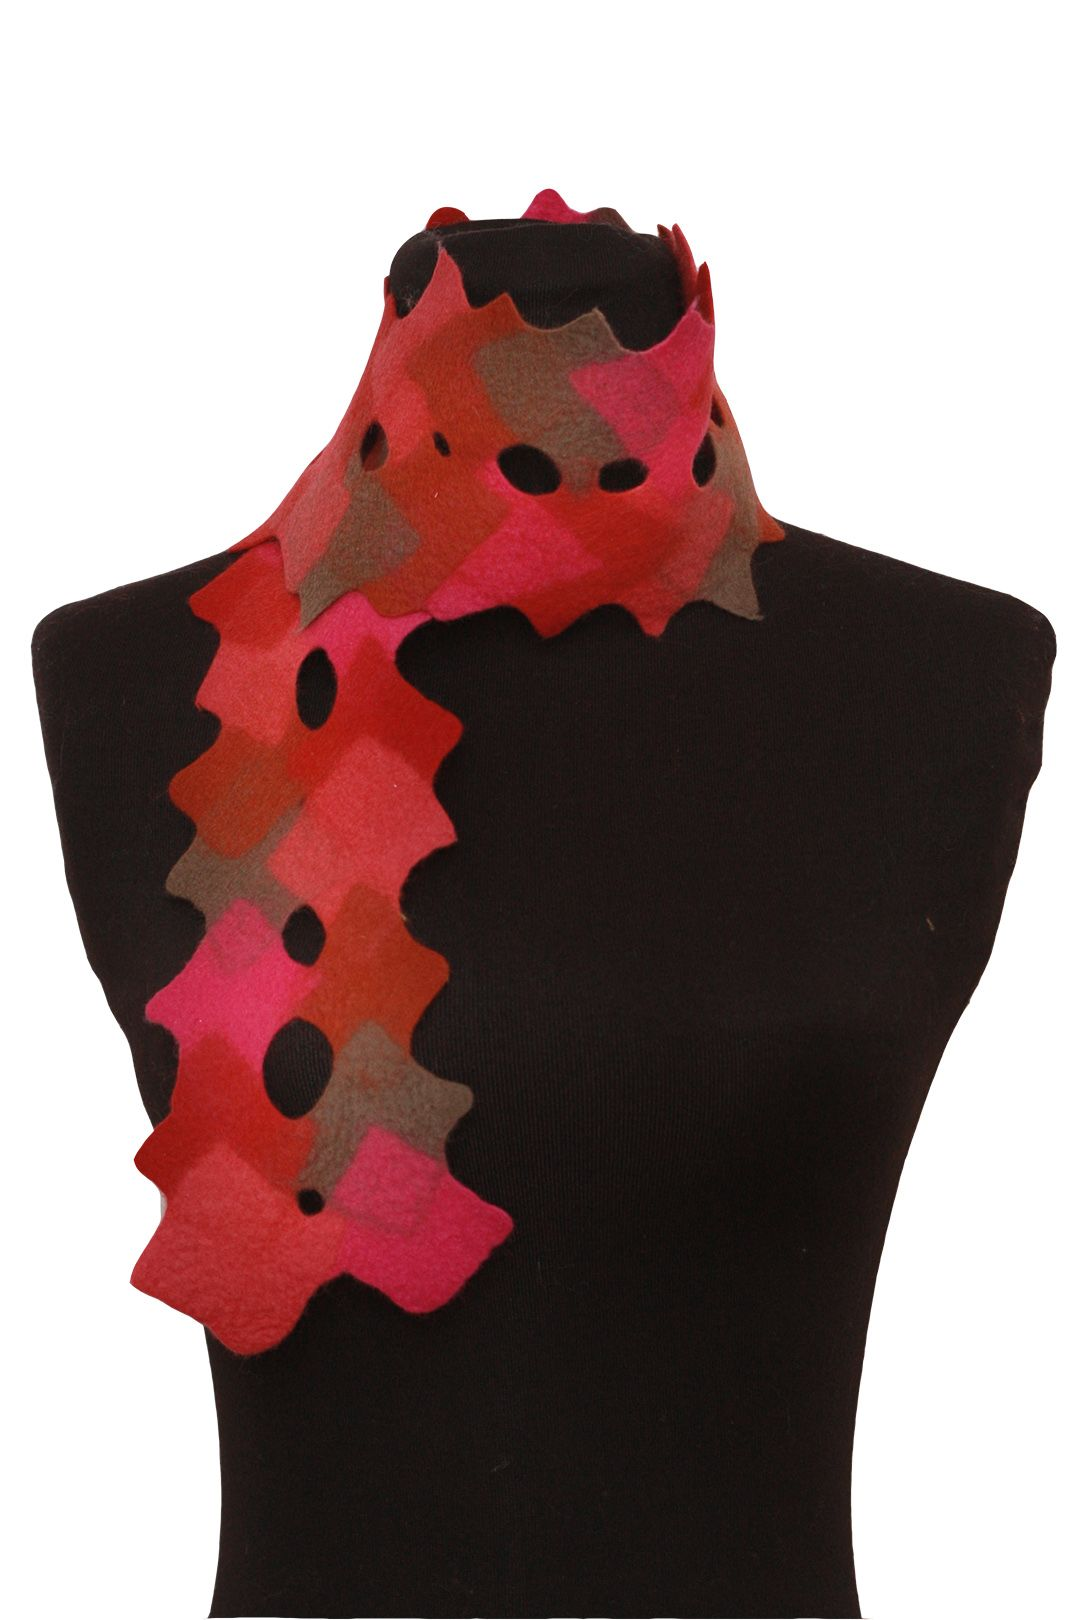 DIAMONDTAIL SCARF INCLUDES : Prefelt & Step-by-Step instructions.  This kit makes a great scarf for early fall. Perfect for a cool autumn day at a harvest festival before the frigid winter winds come. 4 color varieties.